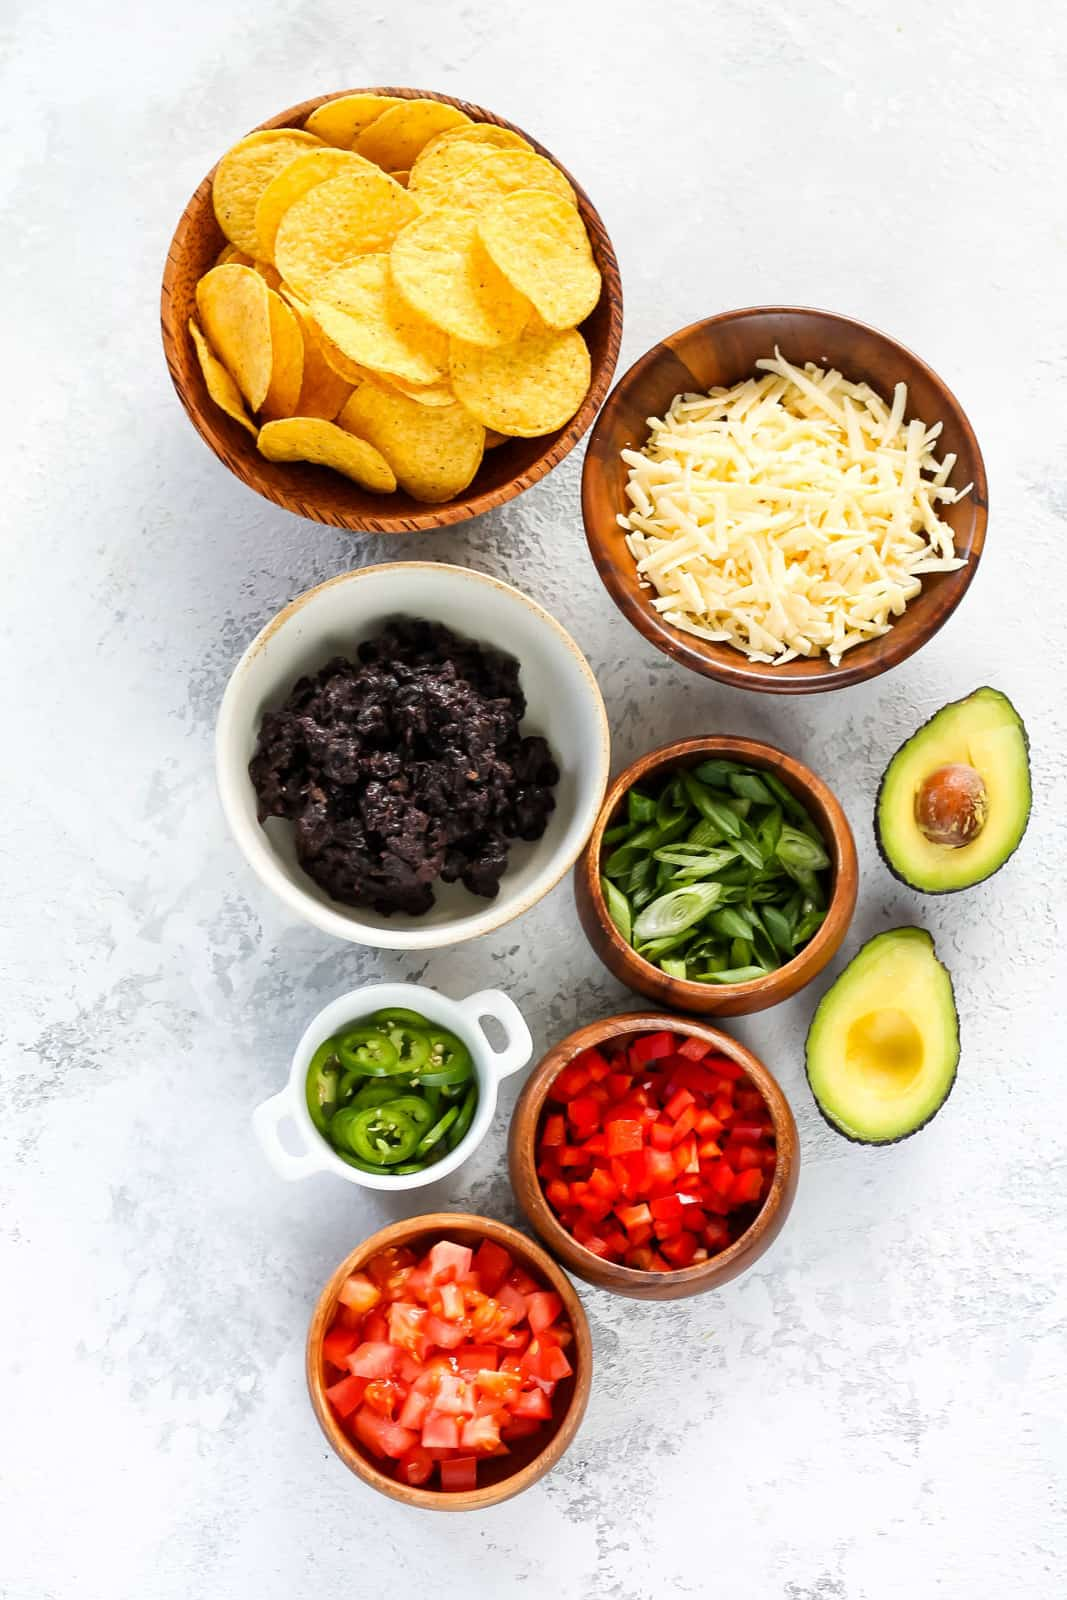 nacho chips, cheese, black beans, avocado, diced tomato, diced red pepper, green onion, and sliced jalapenos on a grey background